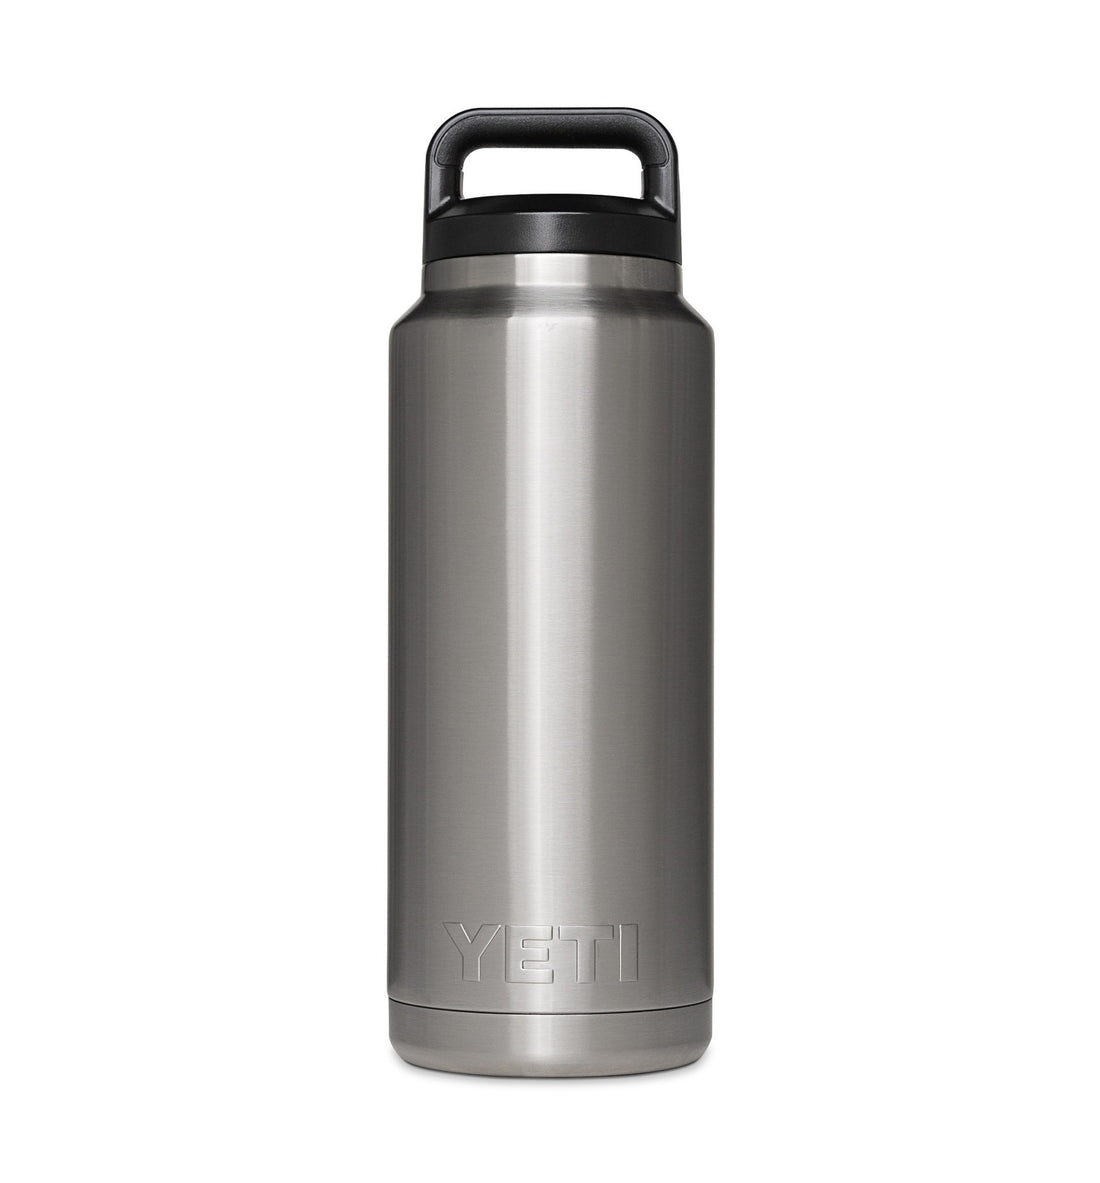 Yeti Rambler Bottle, 36 oz Stainless - Outdoor Living/Travel - Iron and Resin